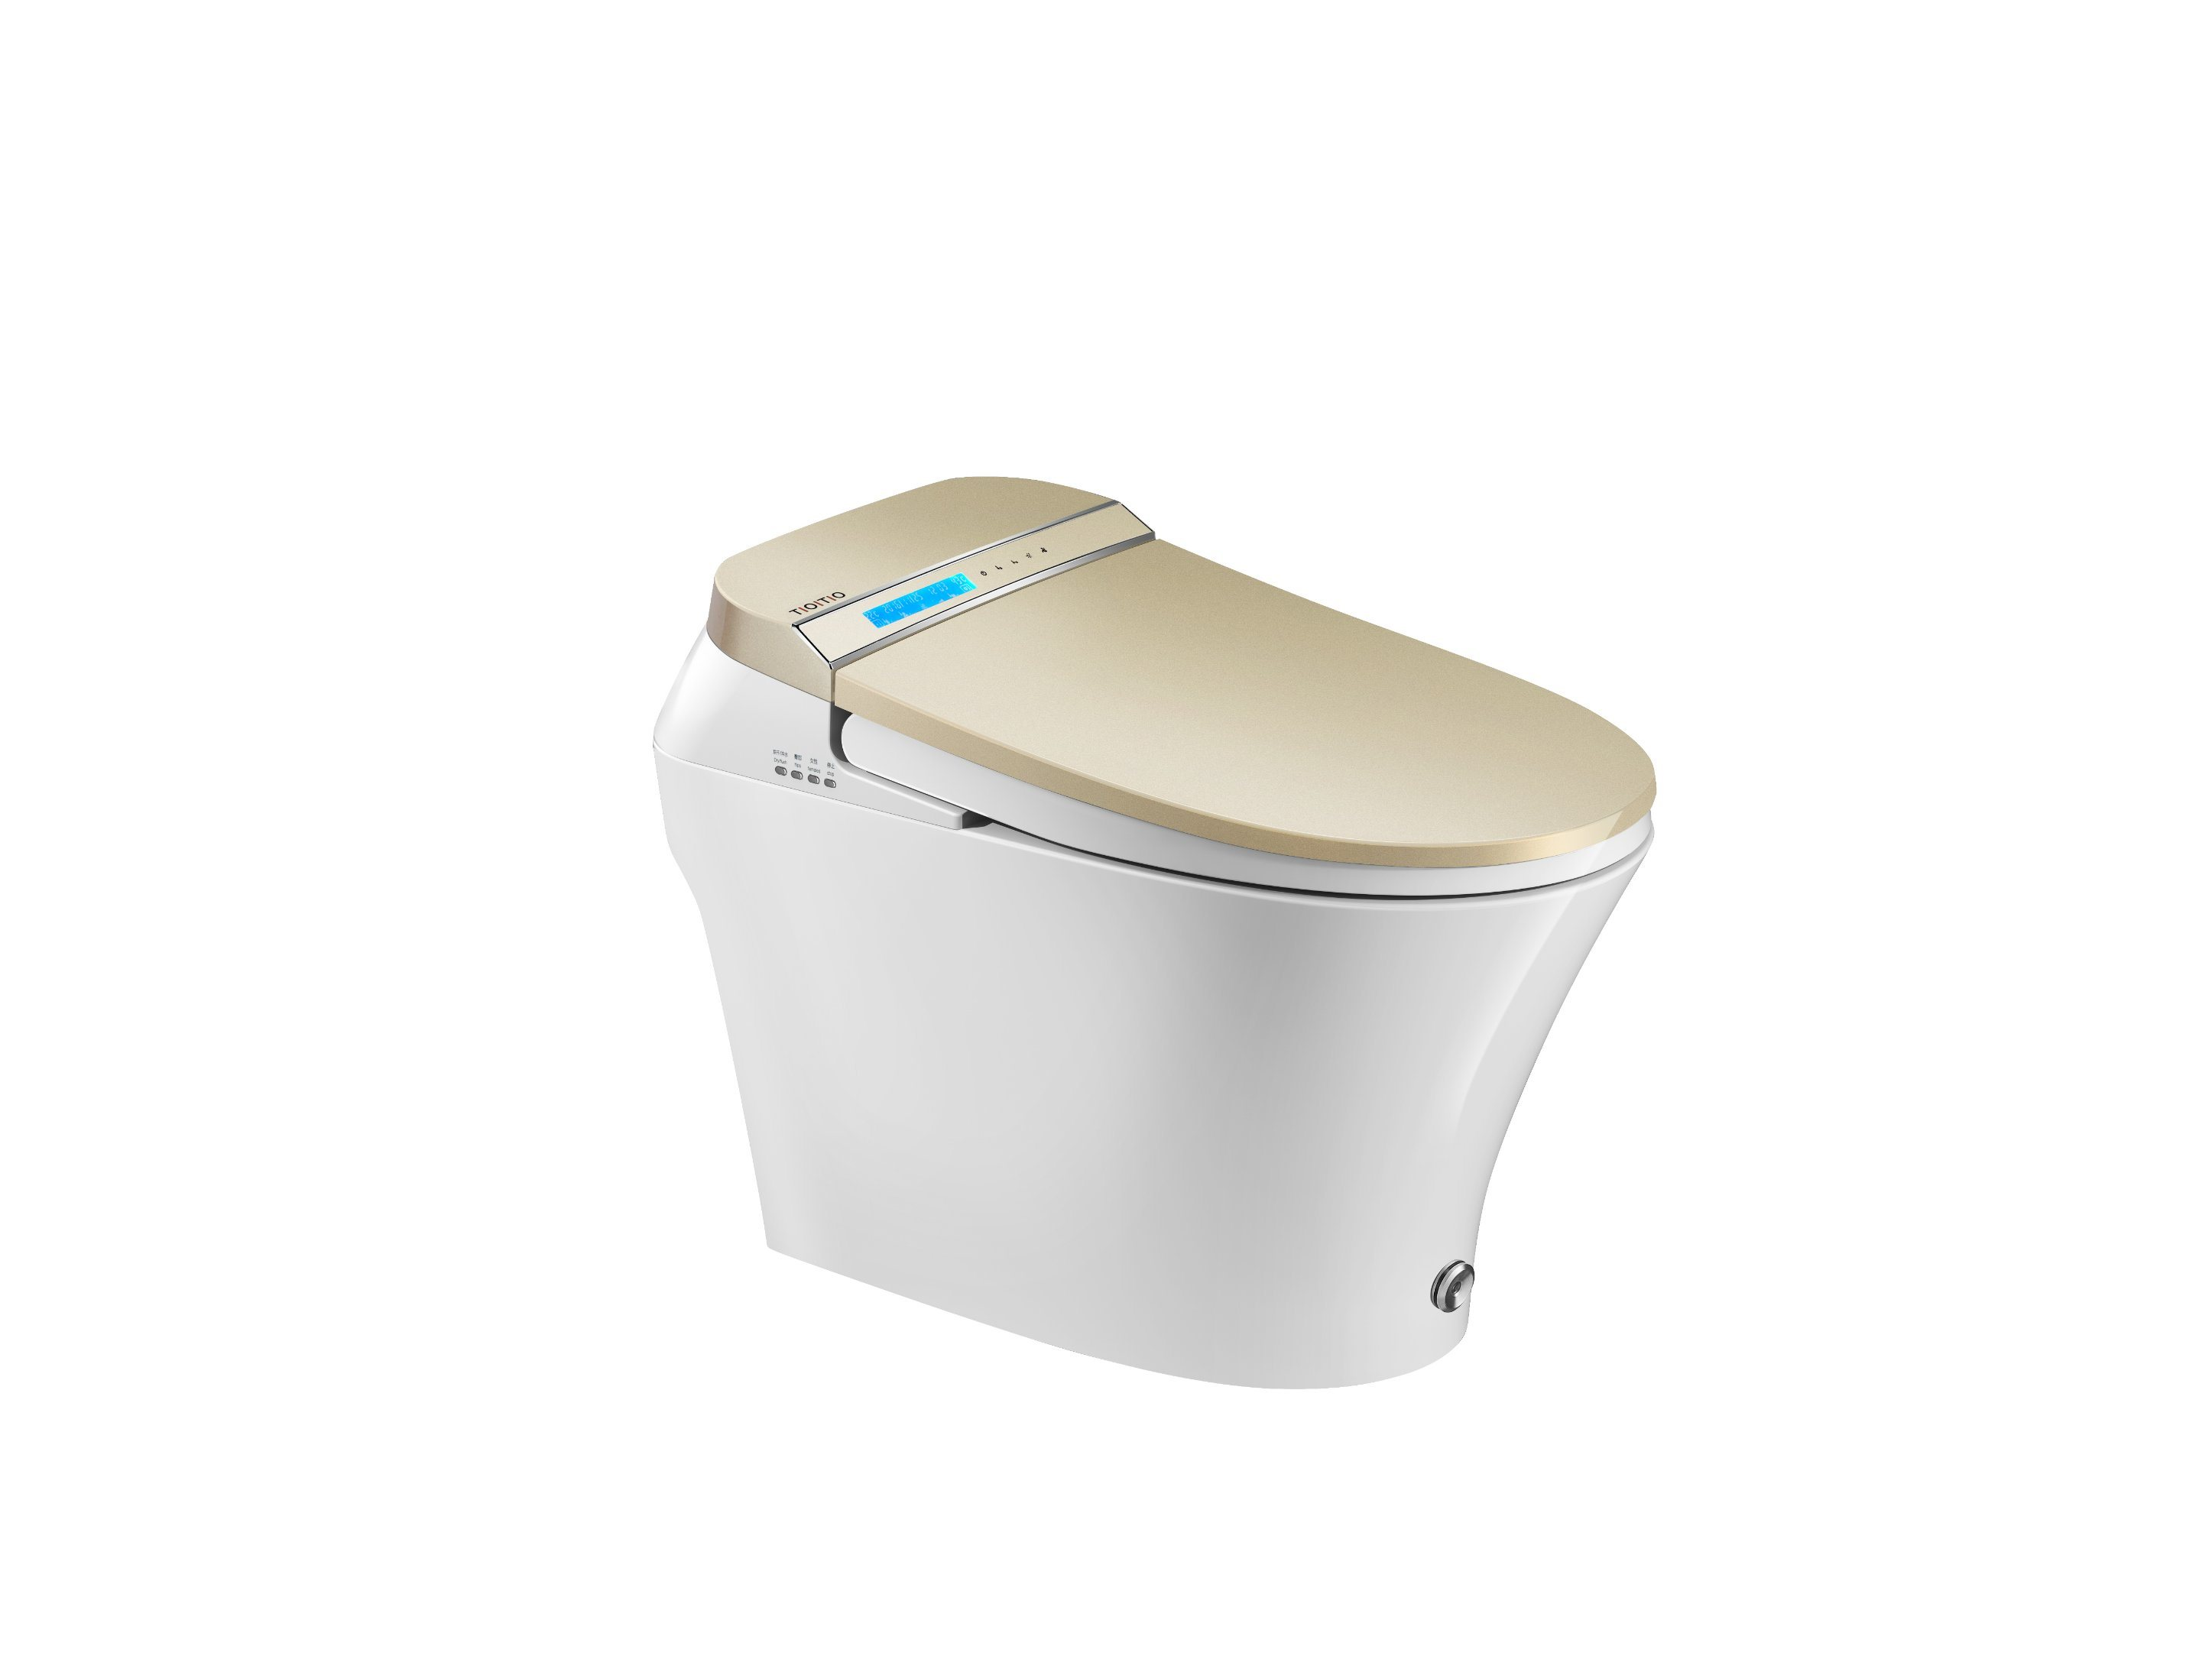 Surprising Hot Item Front Wash Electric Warm Heat Automatic Bidet Toilet Caraccident5 Cool Chair Designs And Ideas Caraccident5Info